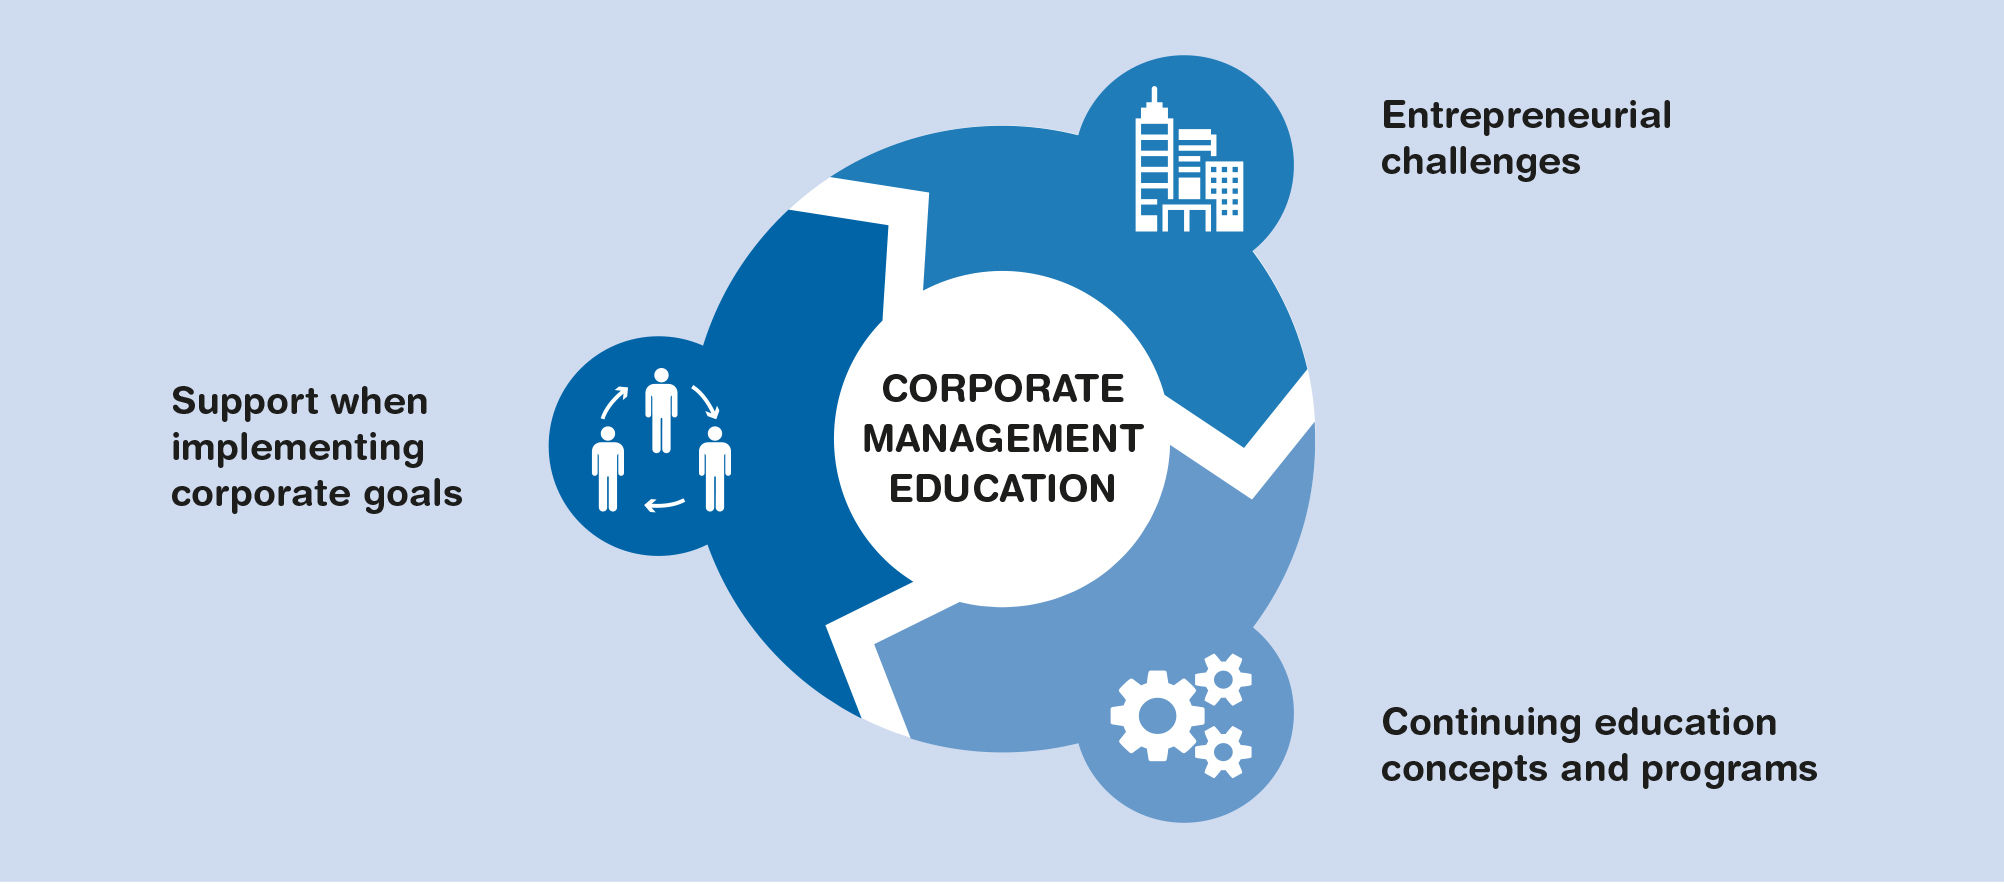 Corporate Management Education